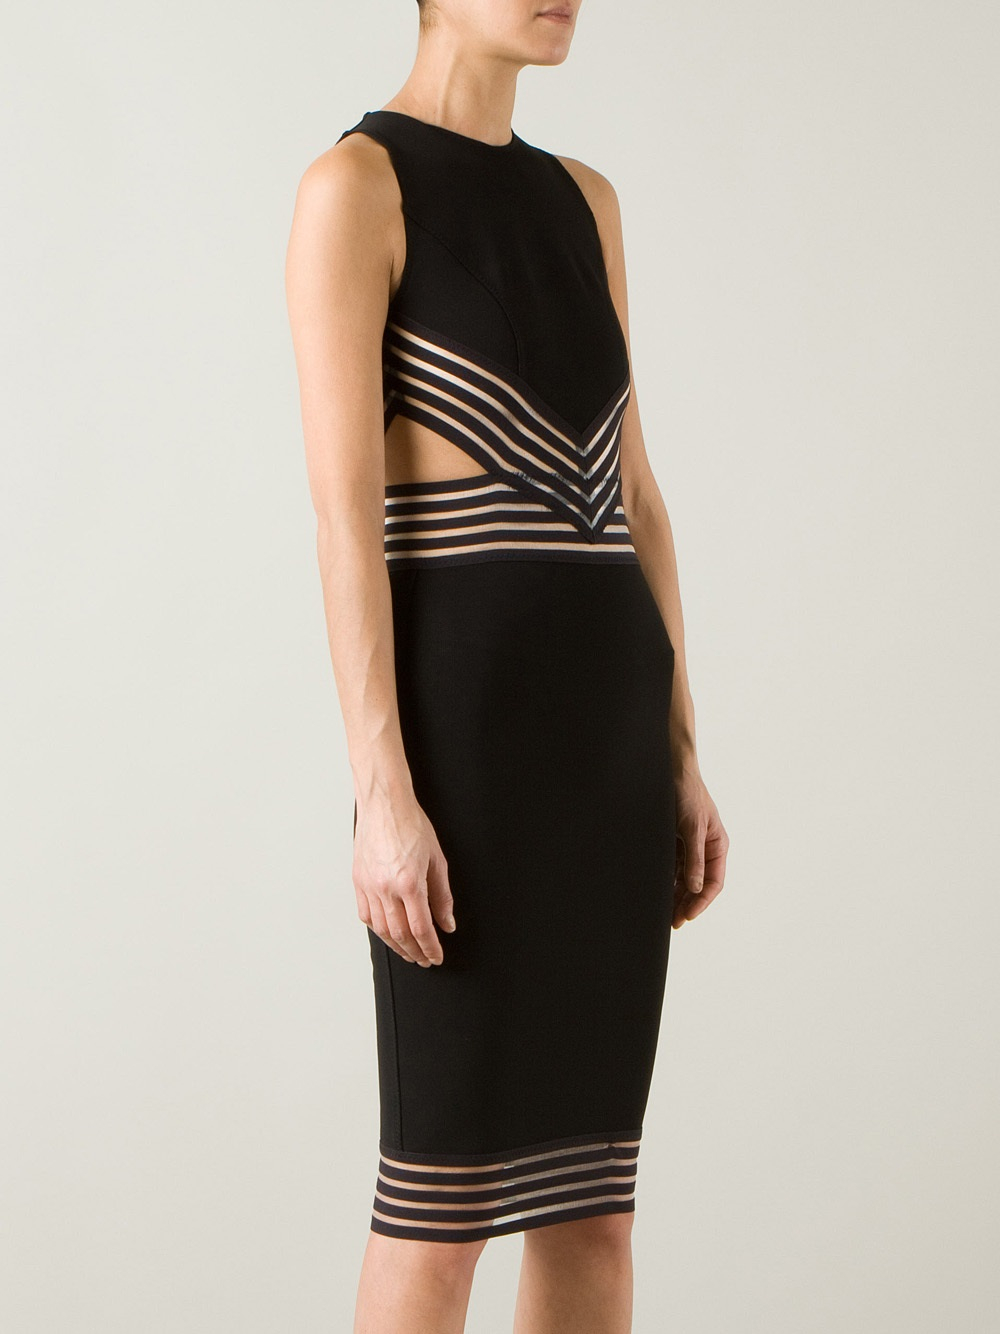 80873b9f5d Christopher Kane Cut Out Pencil Dress in Black - Lyst